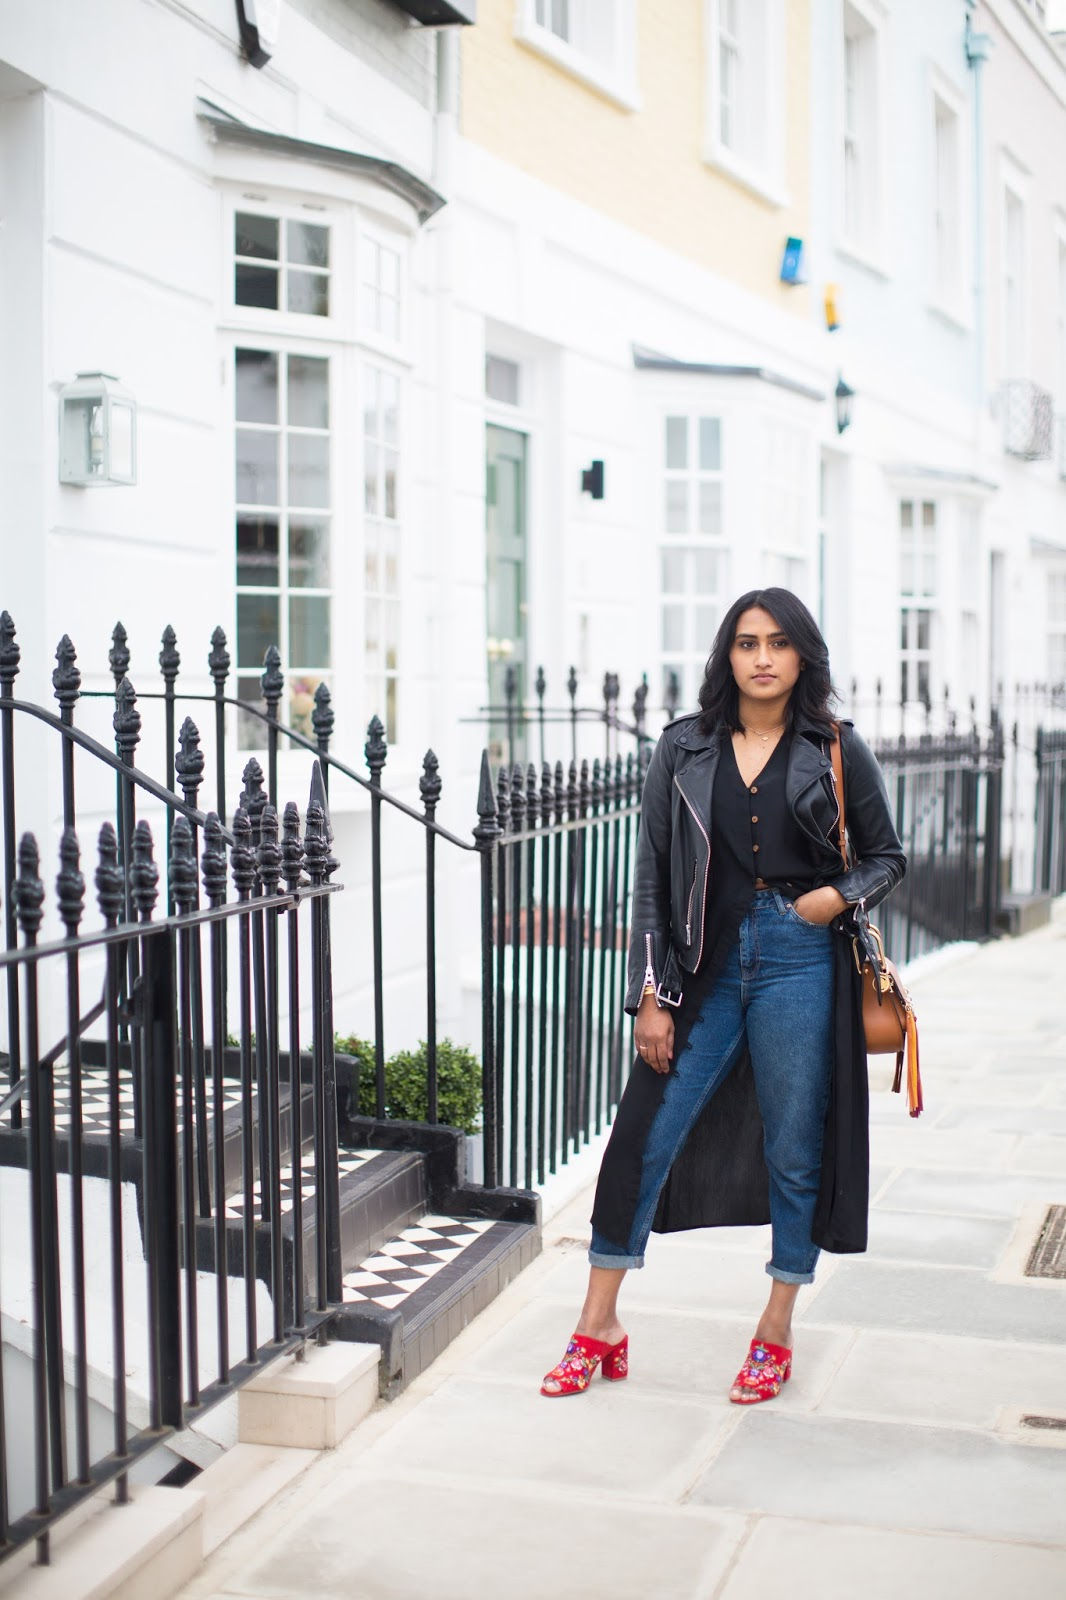 Dress or Jeans? Why not both – my thoughts about trying to stay away from black